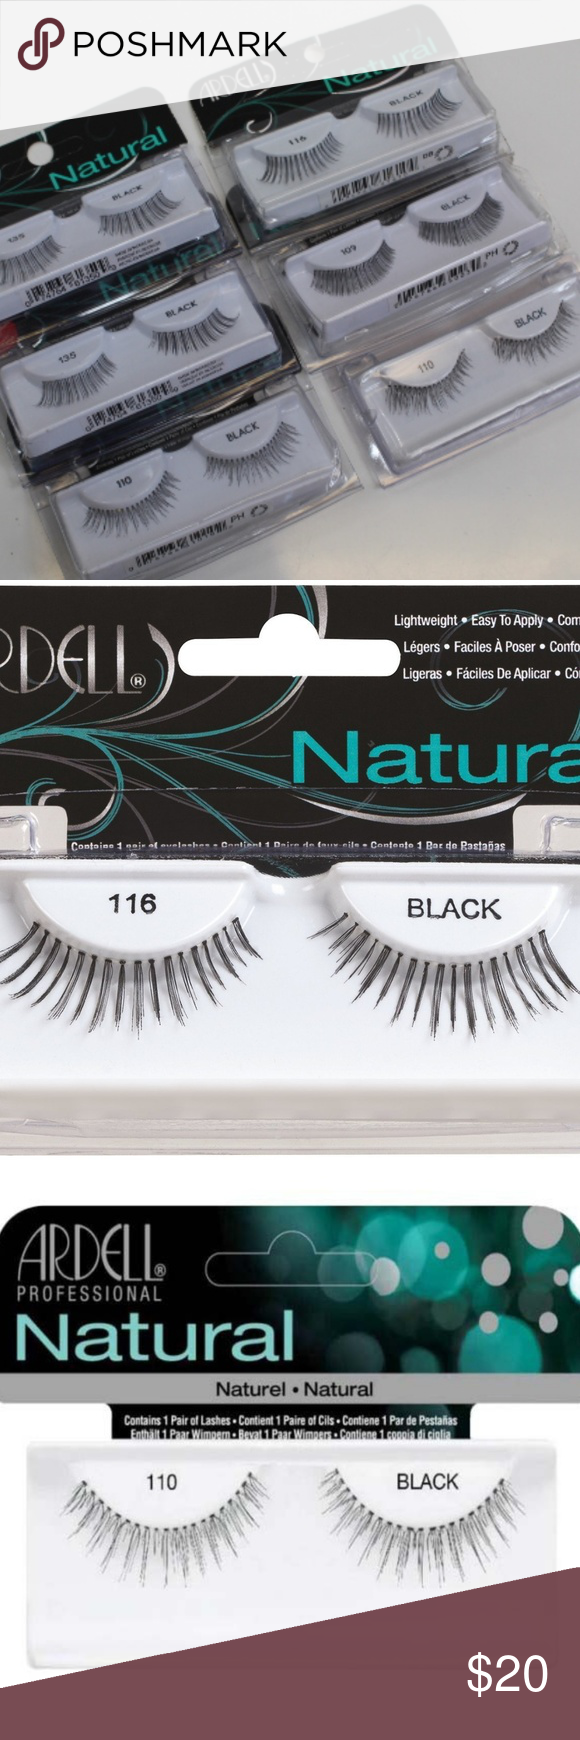 03c74aa7308 *798 ARDELL NATURAL 6 PIECES SET LASHES ARDELL NATURAL 1 - 109 BLACK 1 -  116 BLACK 2 - 135 BLACK 2 - 110 BLACK ARDELL Makeup False Eyelashes